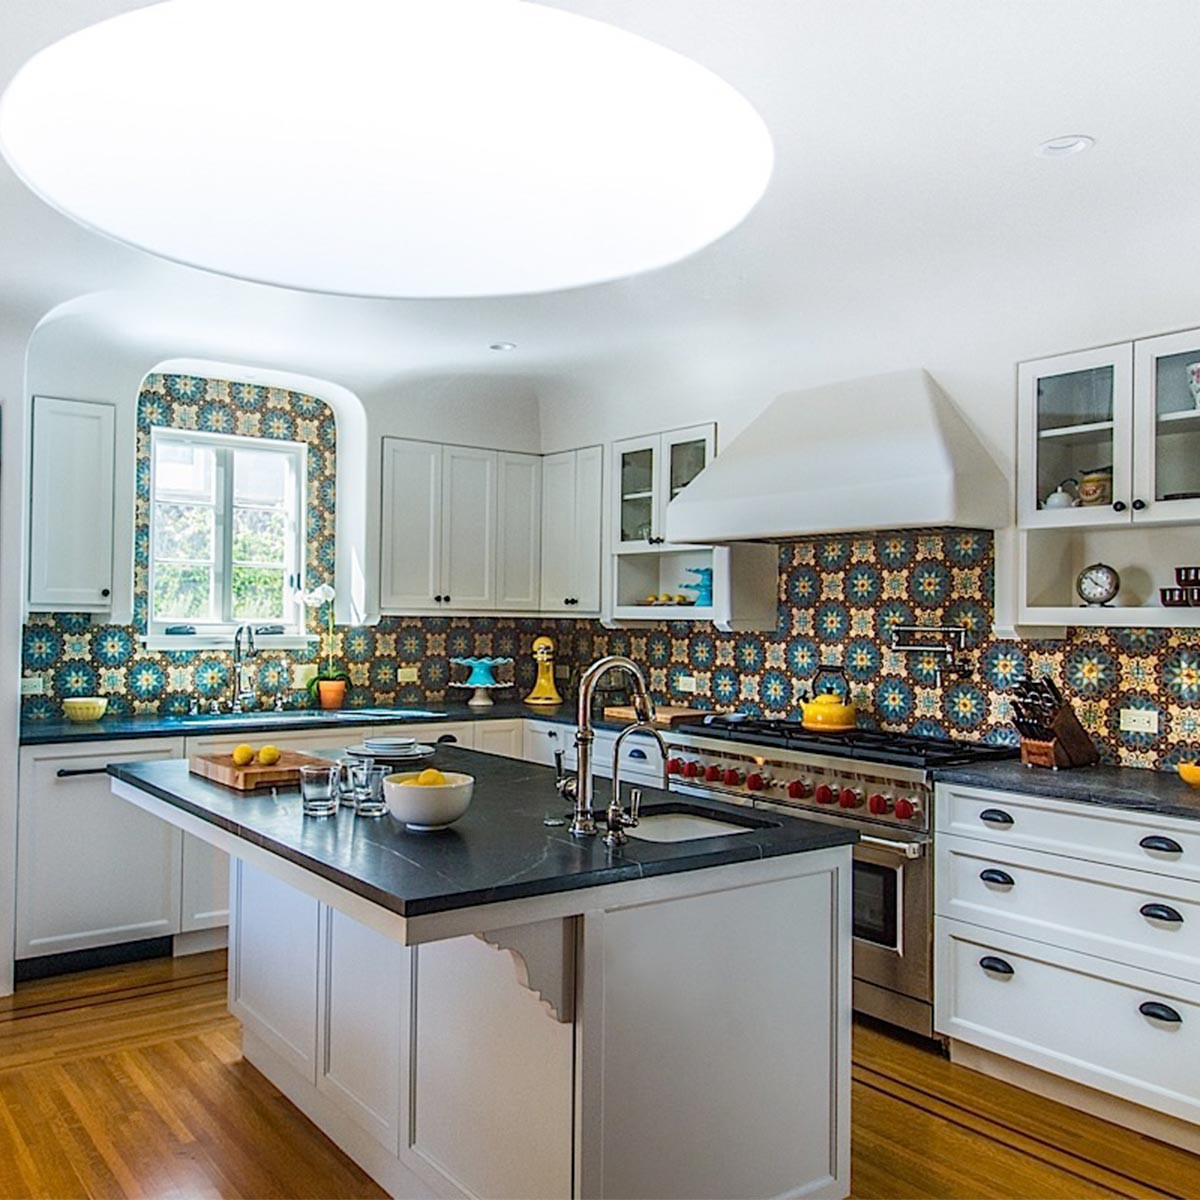 Best ideas about Remodel Kitchen Ideas . Save or Pin Incredible Kitchen Remodeling Ideas — The Family Handyman Now.